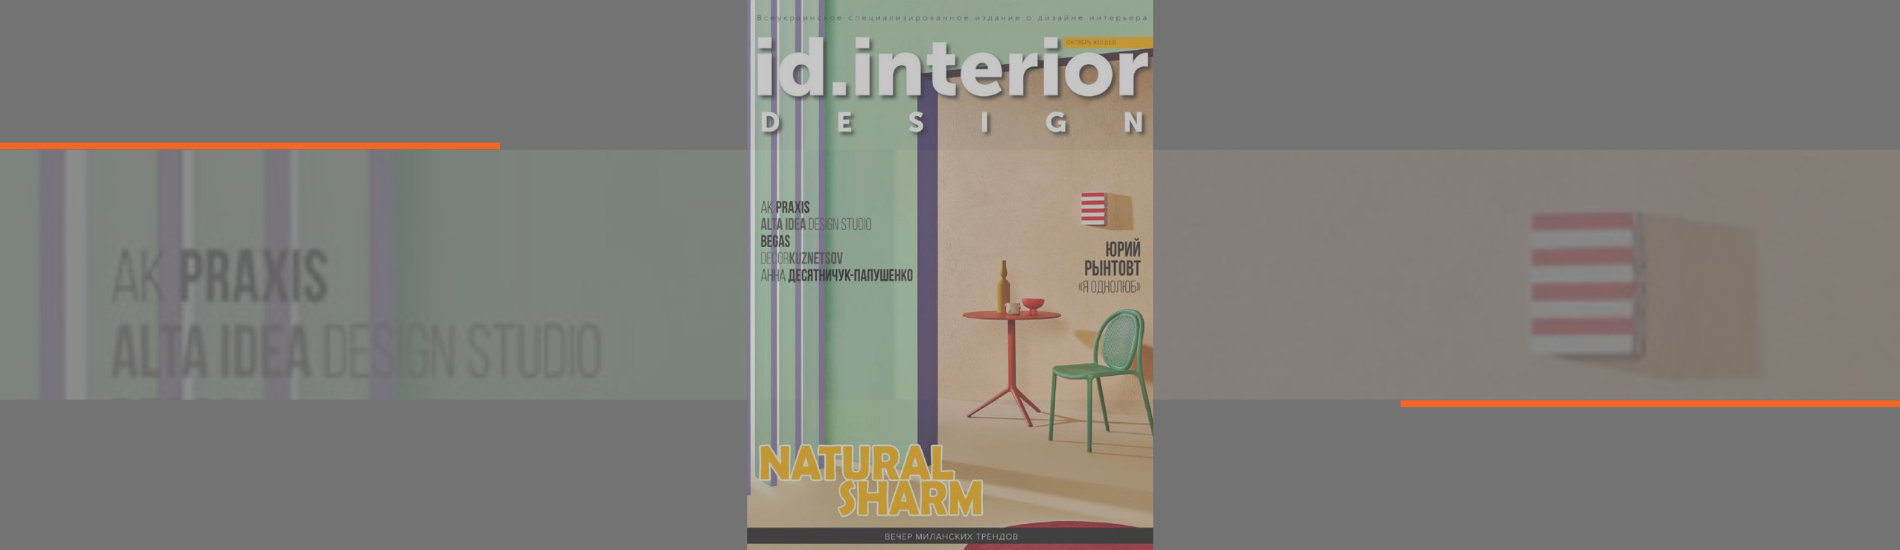 PUBLICATION: ID. INTERIOR DESIGN_RUSSIA